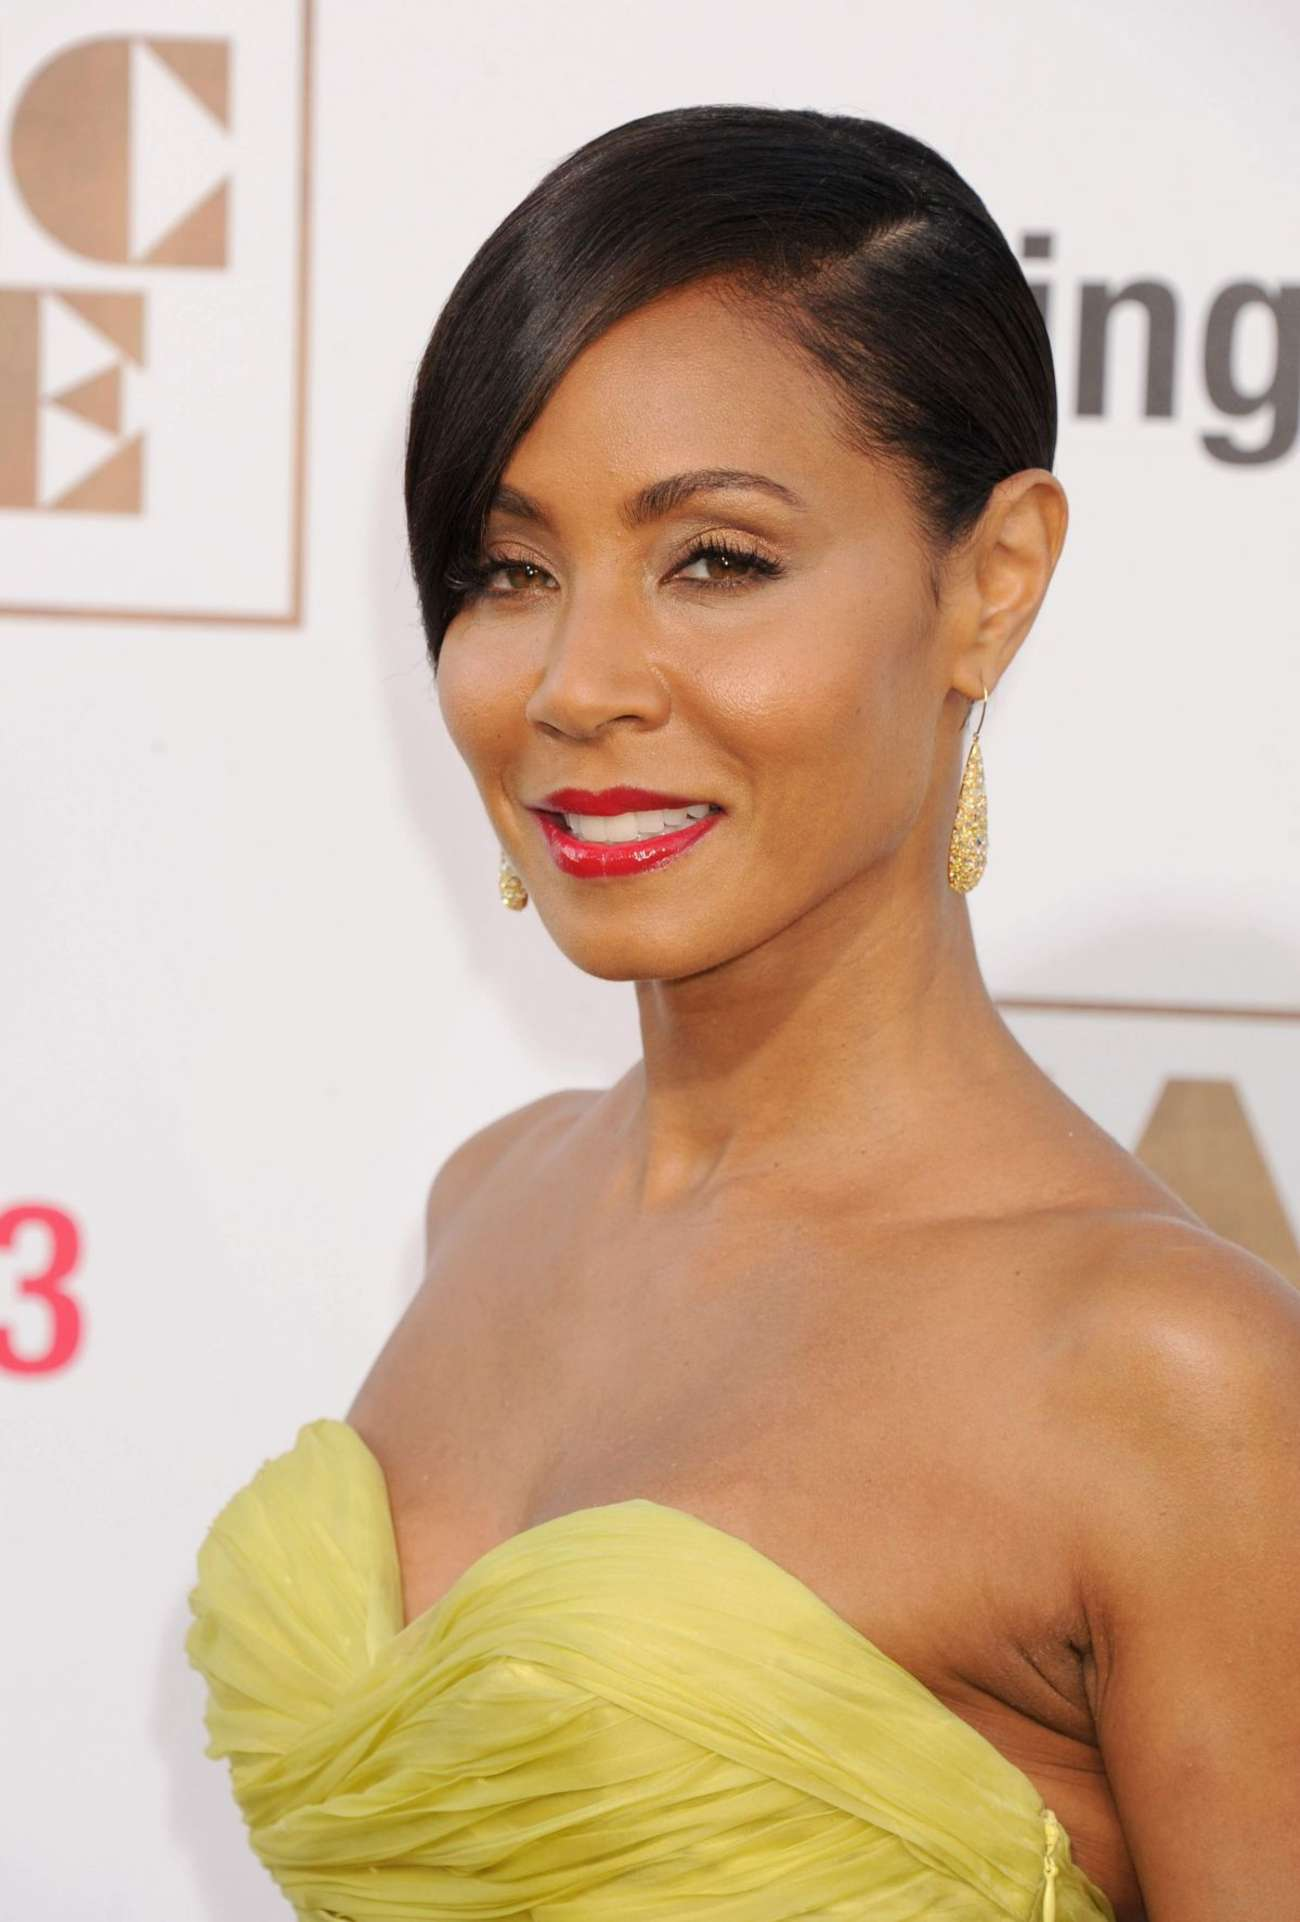 Jada Pinkett Smith Magic Mike XXL Premiere in Los Angeles